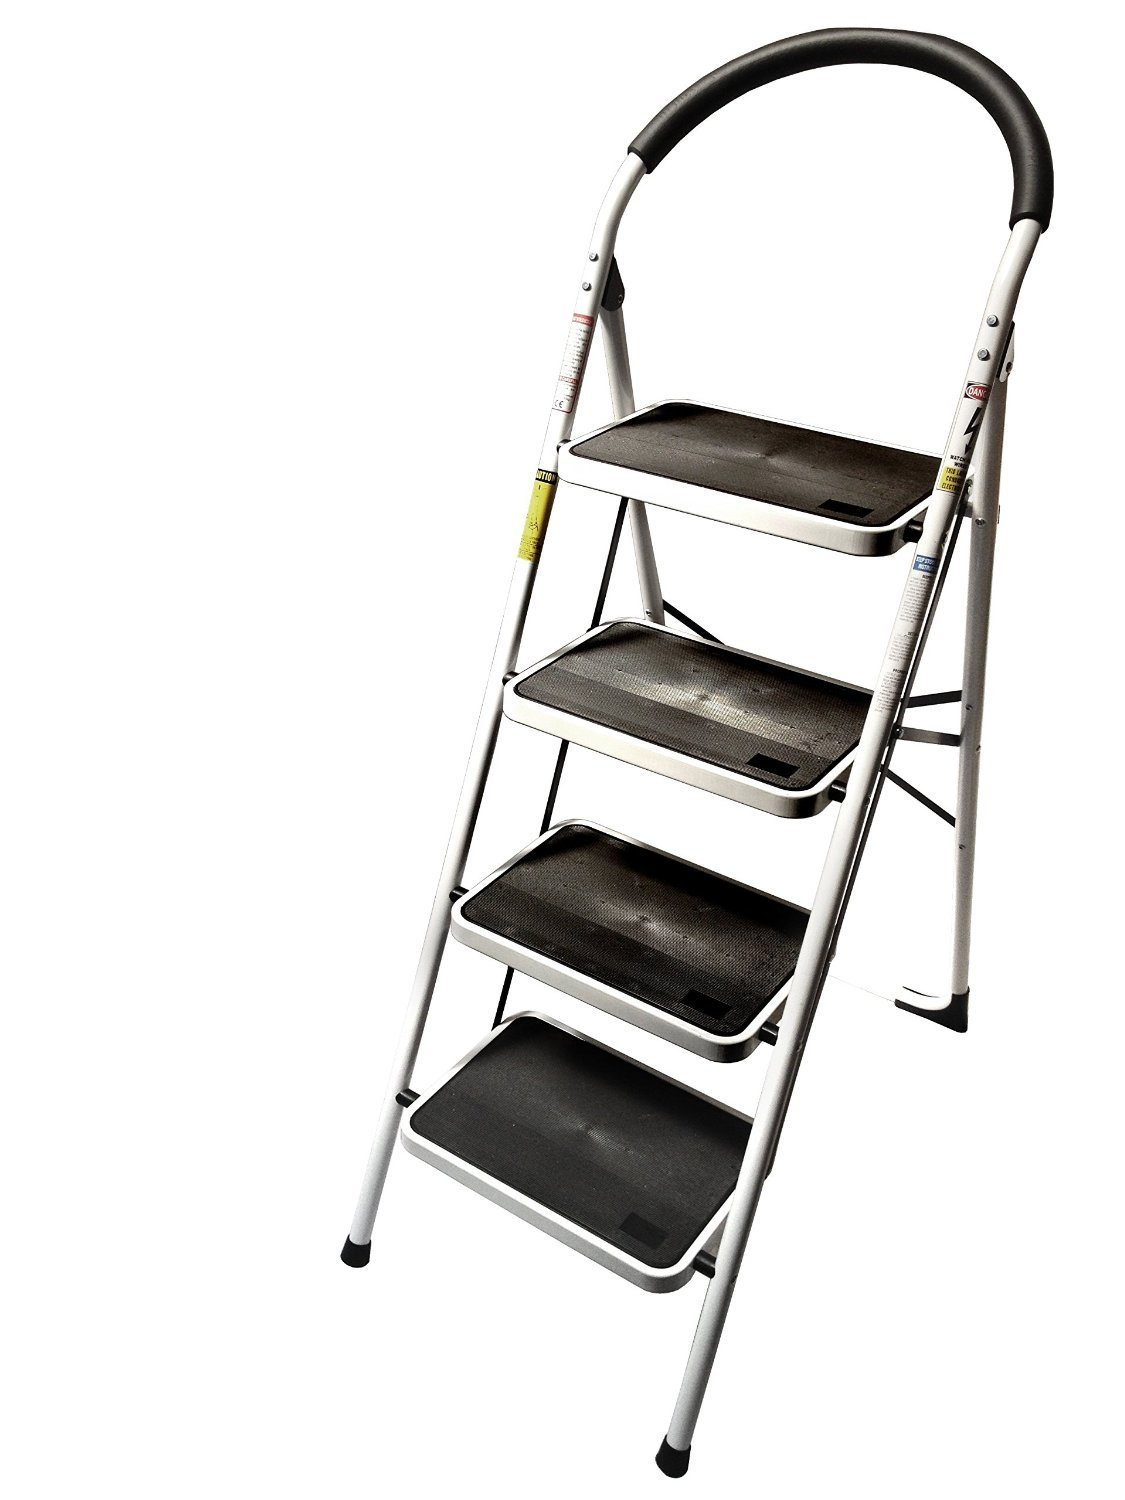 Lavohome 330lbs Upper Reach Reinforced Metal Folding Step Ladder Stool Household Kitchen Use Four Com